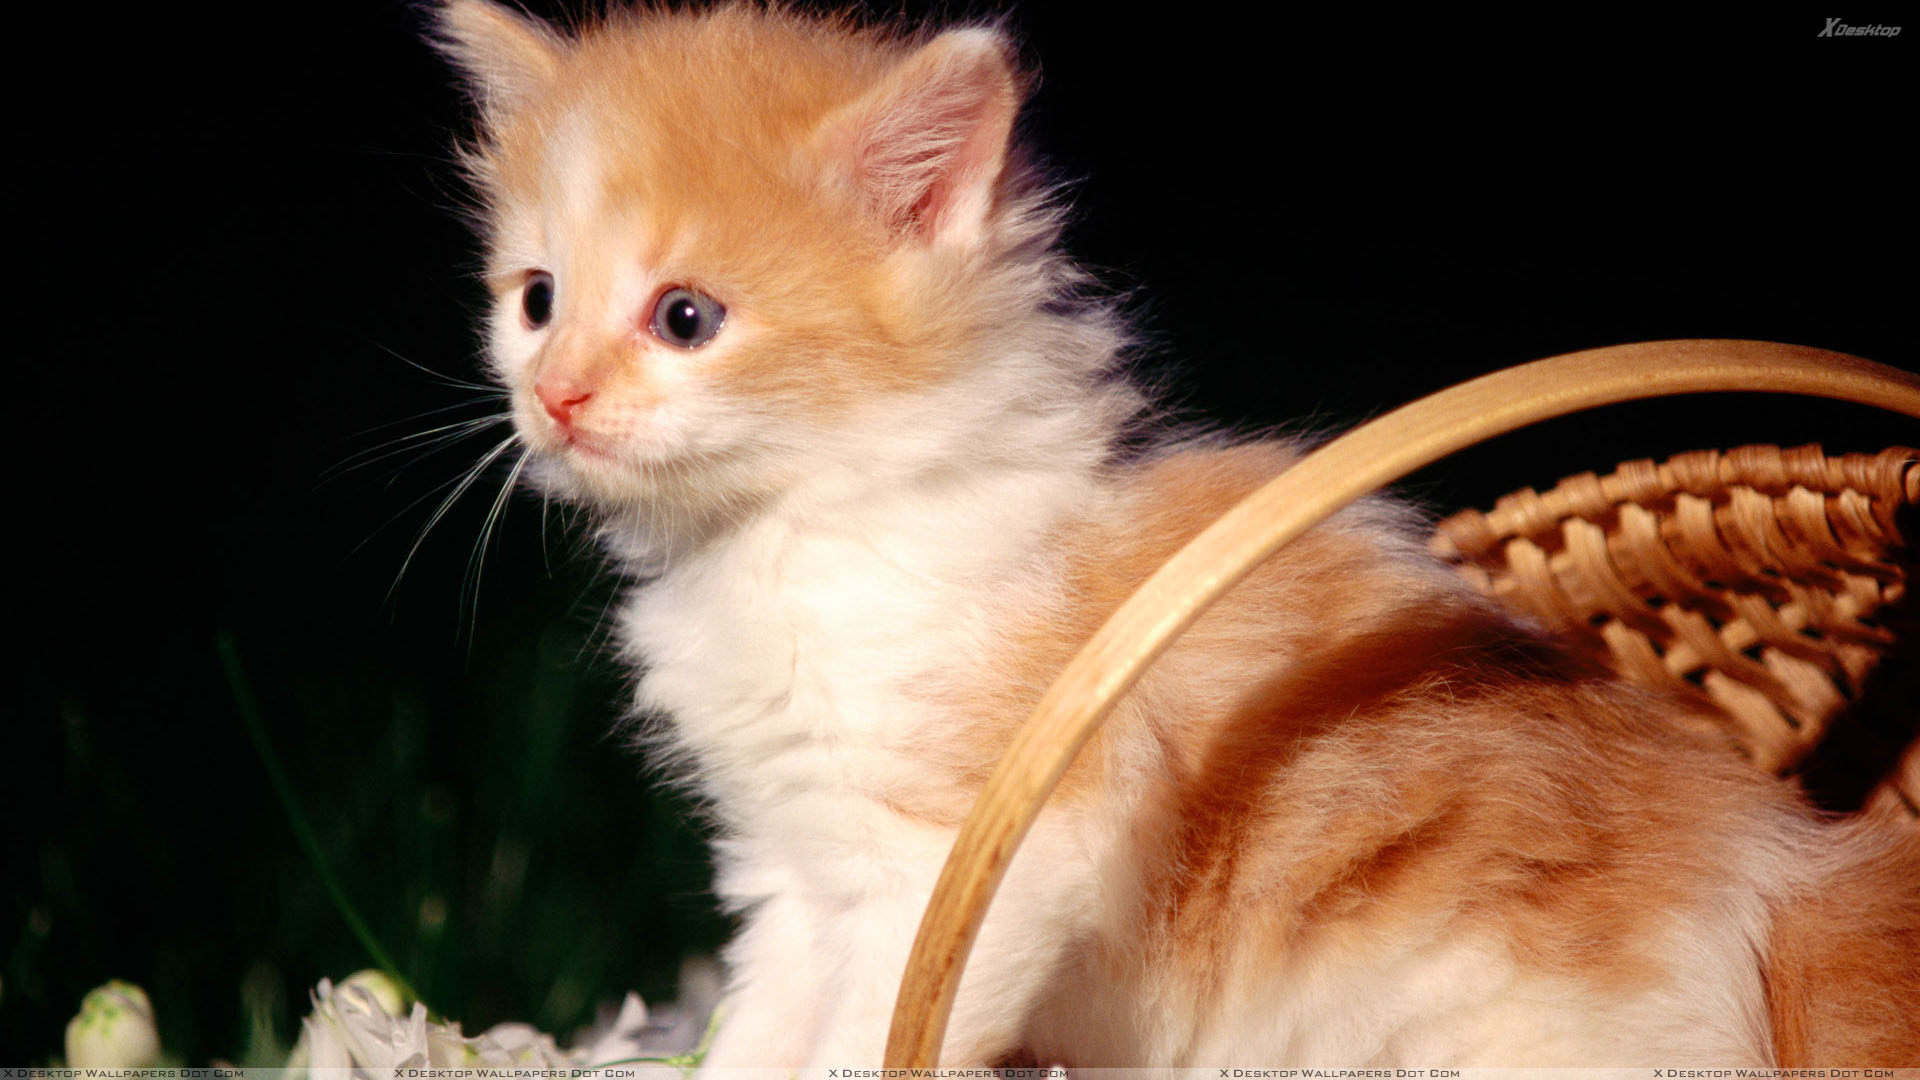 Sweet Small Cat Looking Innocent Wallpaper